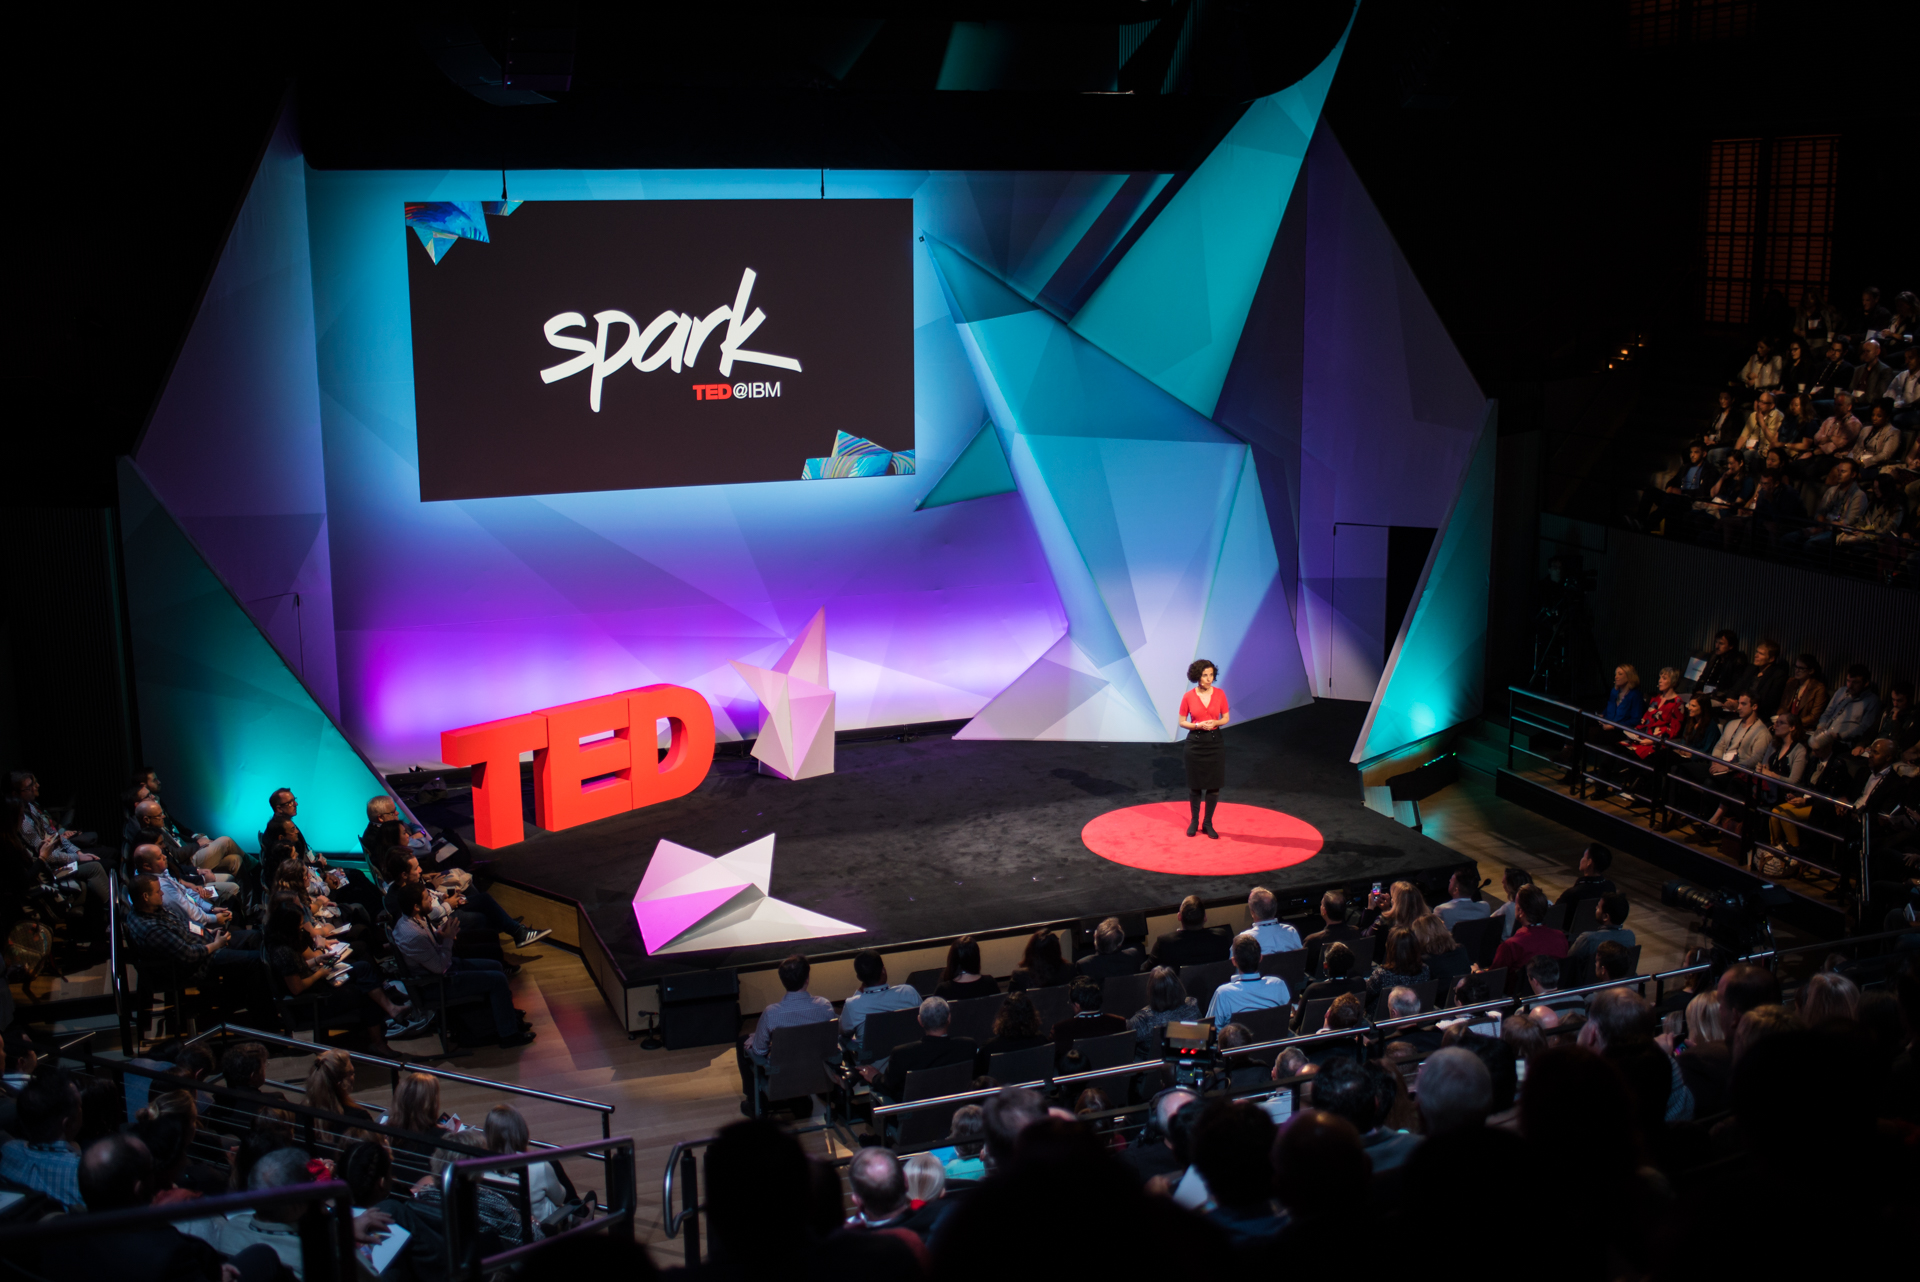 Michela Stribling speaks at TED@IBM salon - Spark, November 16, 2016, San Francisco Jazz, San Francisco, California. Photo: Russell Edwards/TED